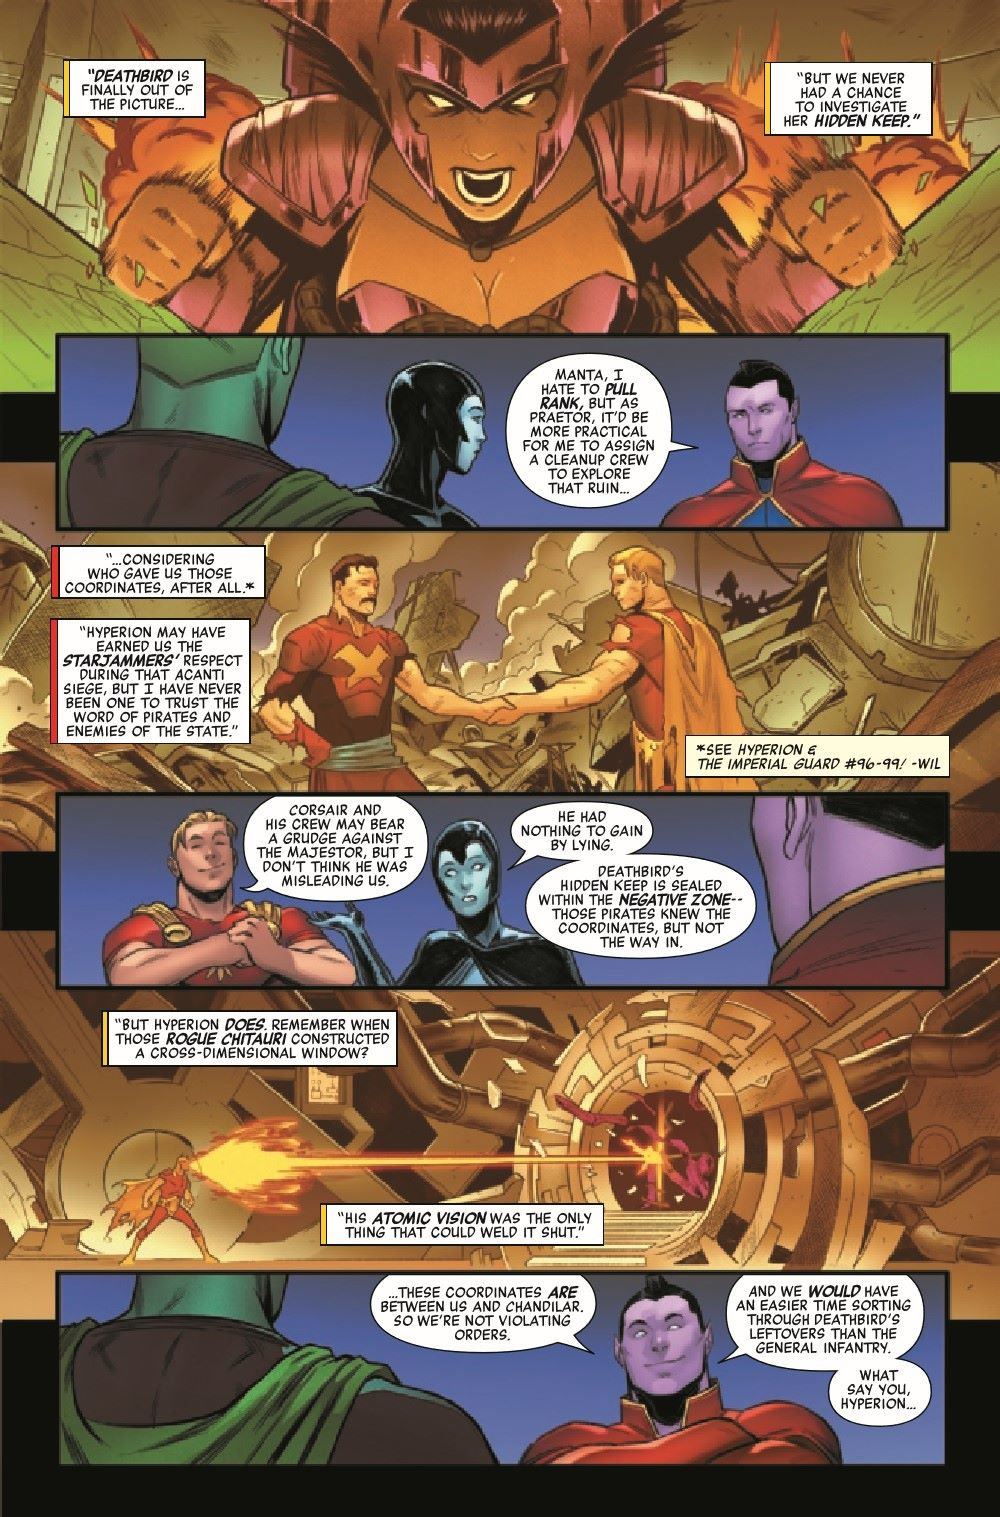 HRHYPIMPG2021001_Preview-6 ComicList Previews: HEROES REBORN HYPERION AND THE IMPERIAL GUARD #1